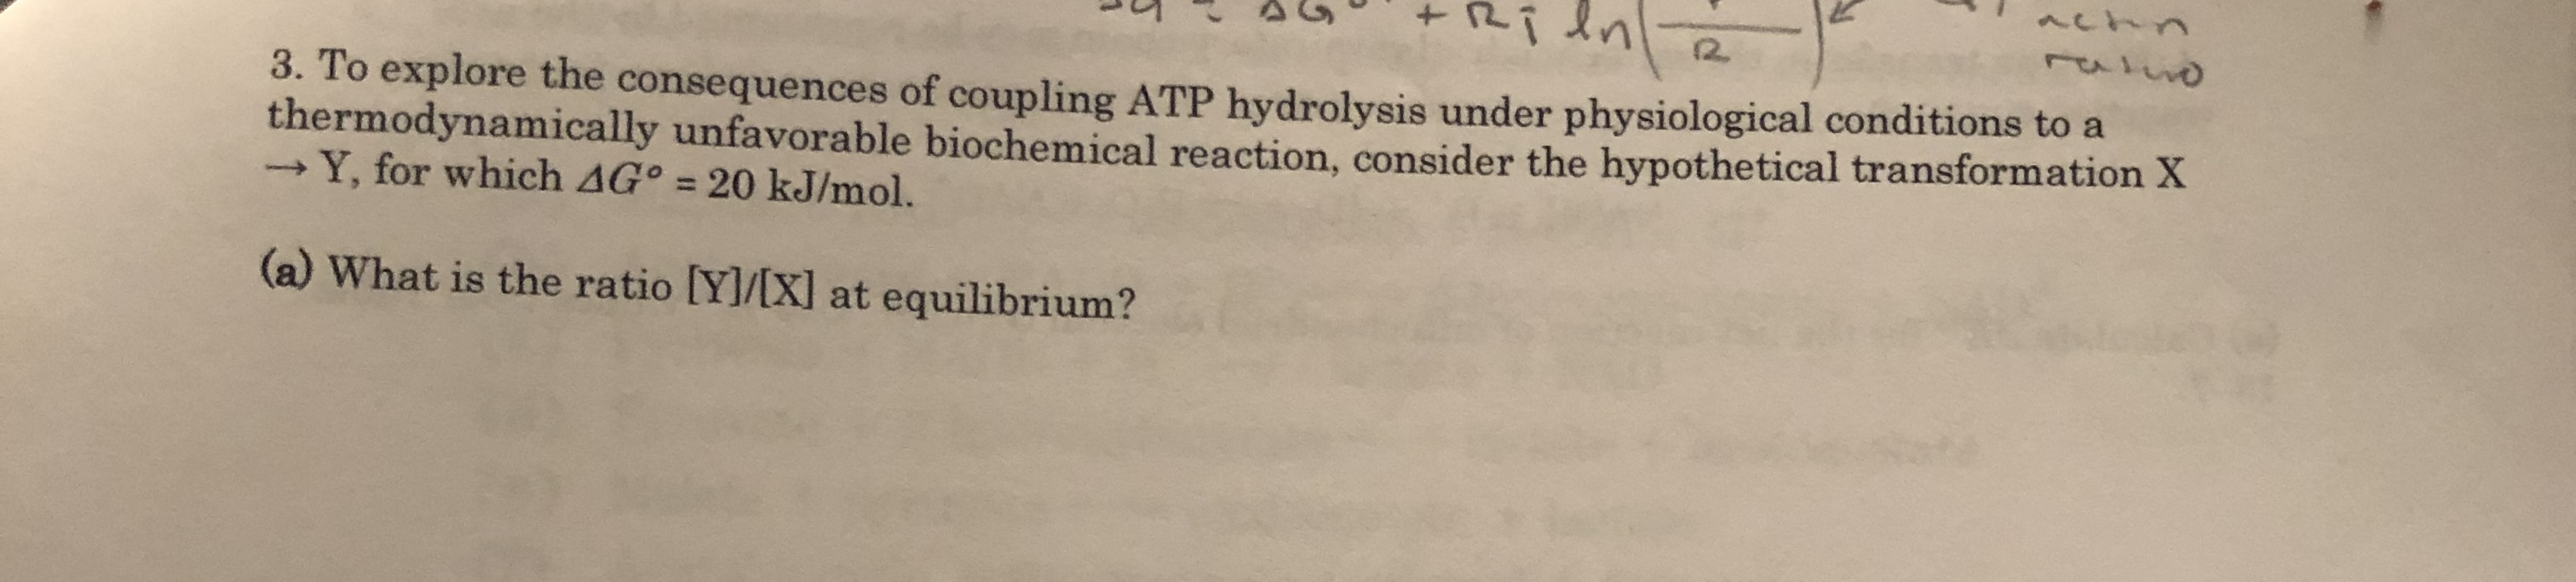 Ri dn 12. 3. To explore the consequences of coupling ATP hydrolysis under physiological conditions to a thermodynamically unfavorable biochemical reaction, consider the hypothetical transformation X -Y, for which AG° = 20 kJ/mol. (a) What is the ratio [Y]/[X] at equilibrium?